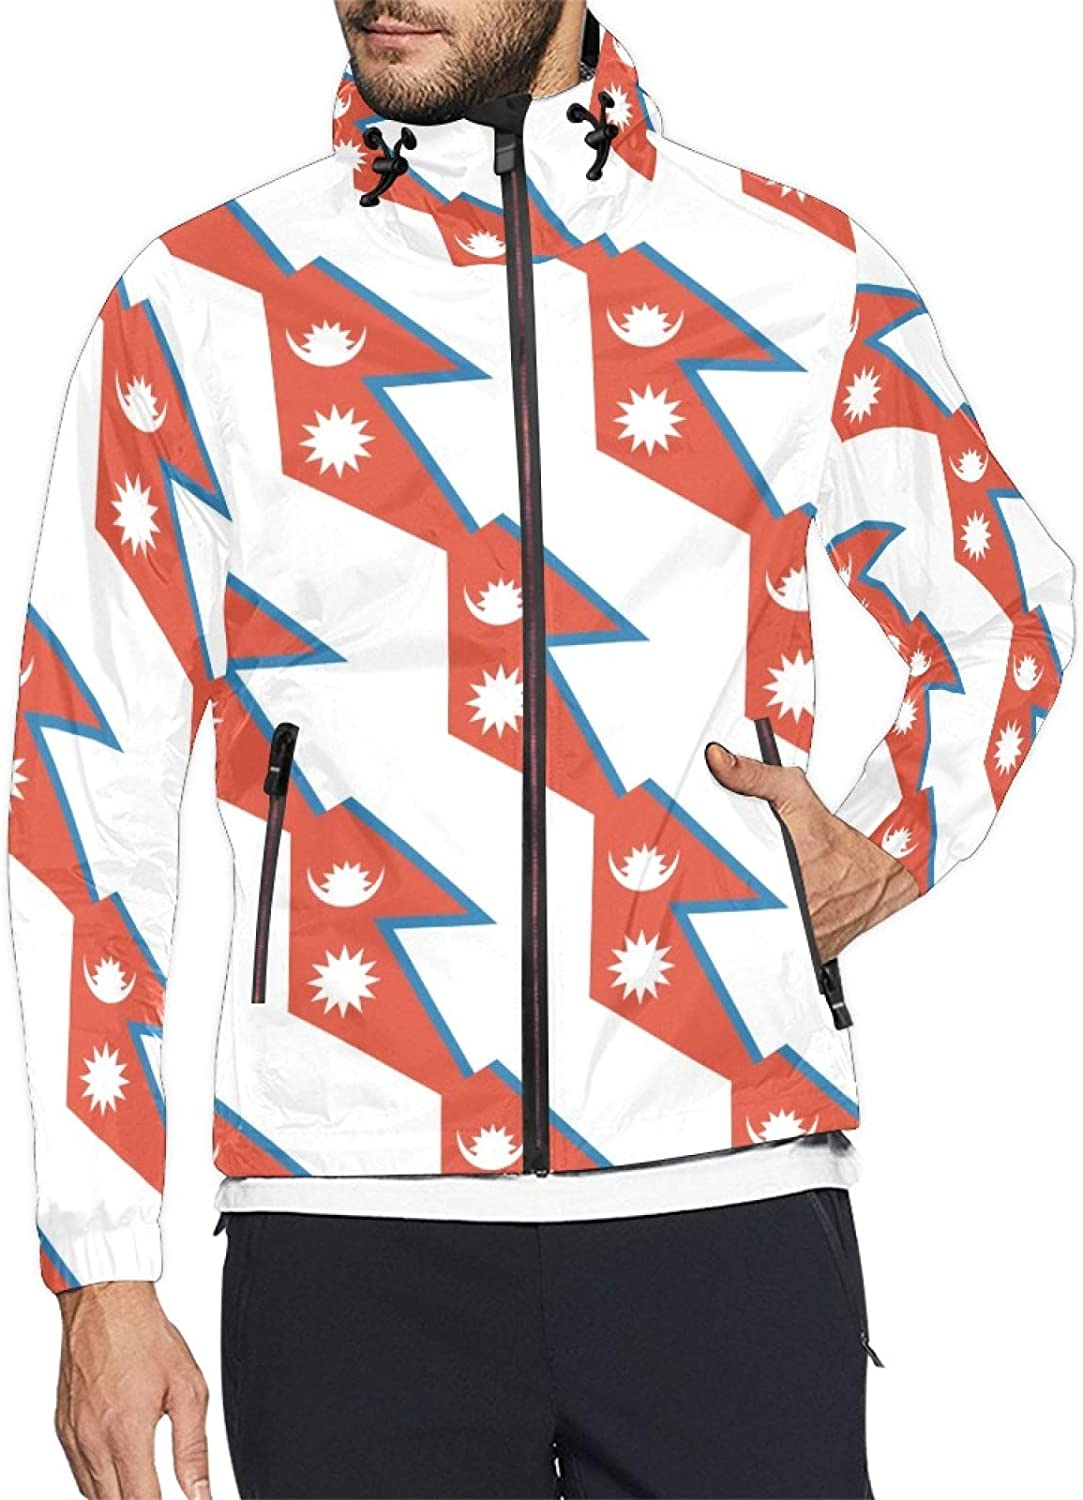 Nepal Flag Mens and Windbreaker Windproof Jacket Womens Max 52% OFF online shopping